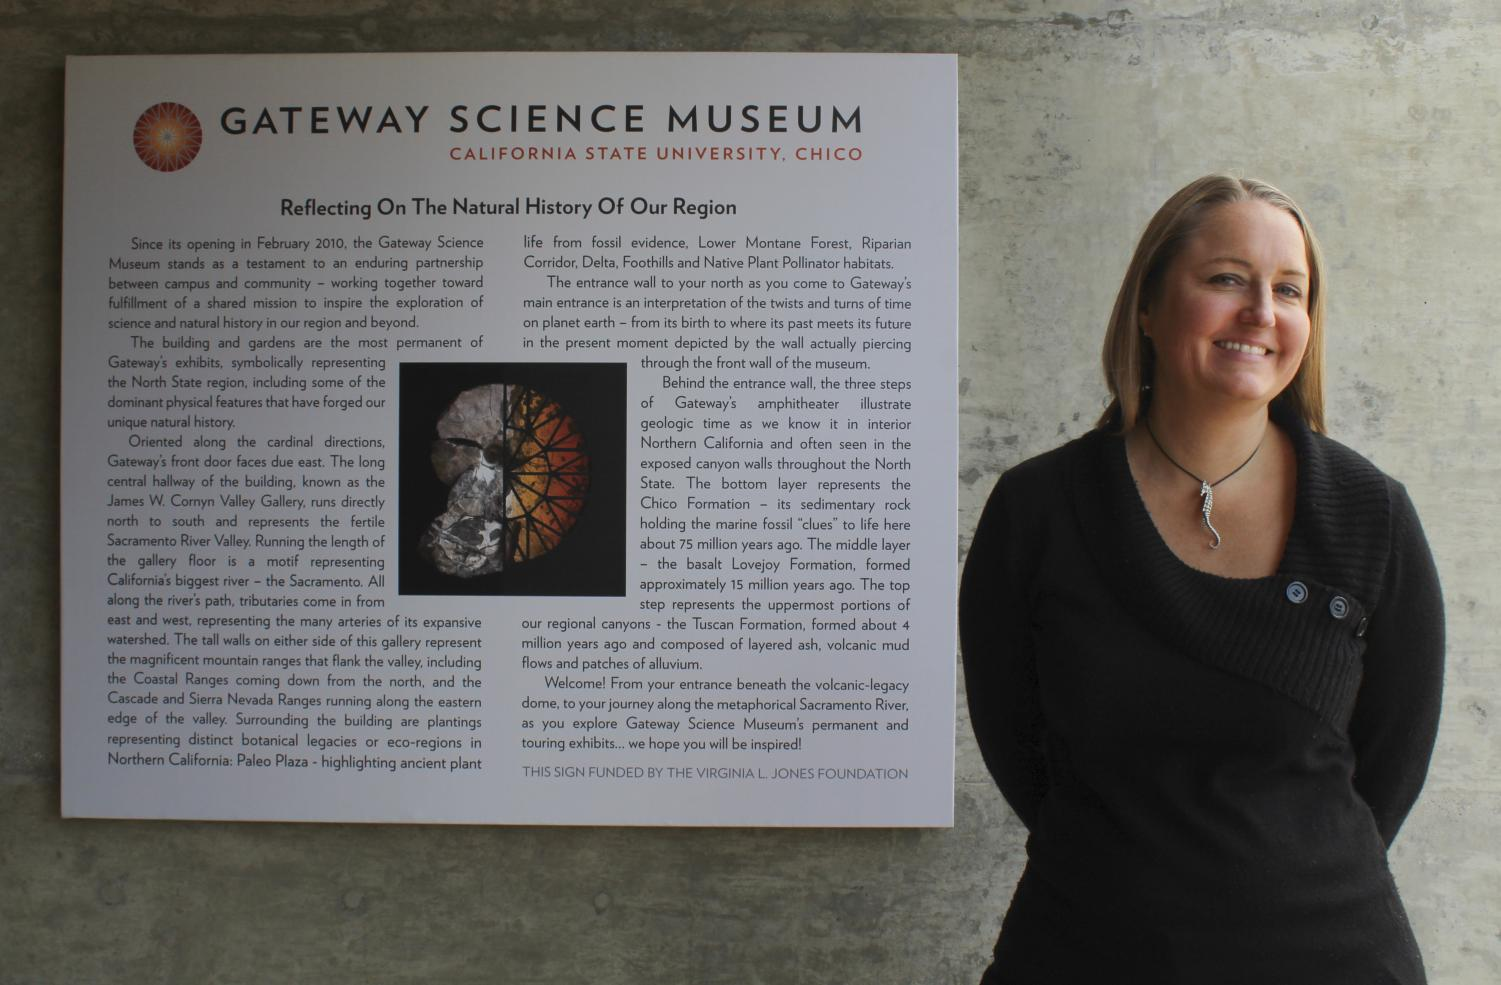 After a months-long national search, Chico state has named Adrienne McGraw as the new executive director of Gateway Science Museum. This image taken on January 25th shows the new director standing in front of the museum. Photo credit: Anne Chamberlain